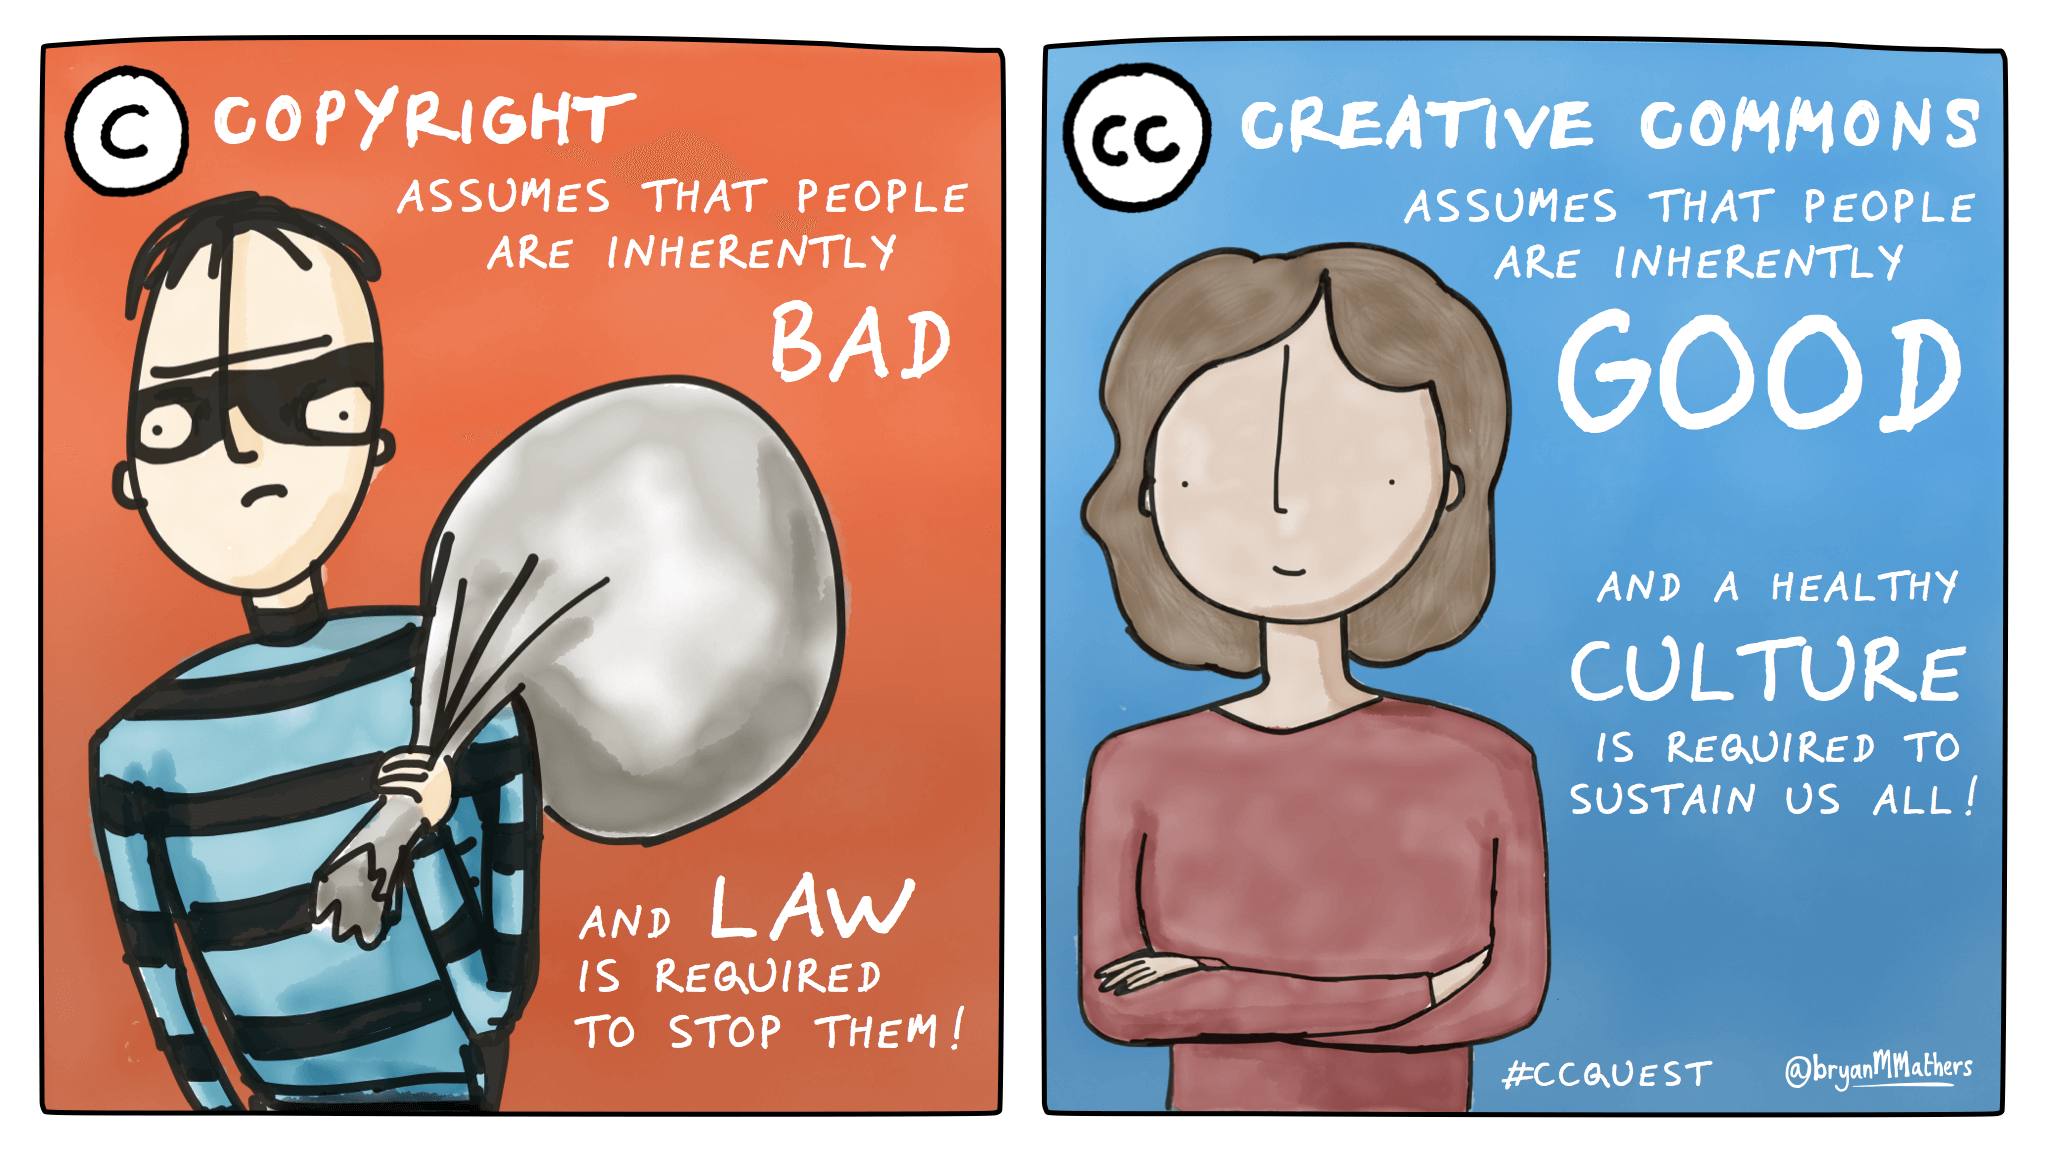 Copyright vs. Creative Commons